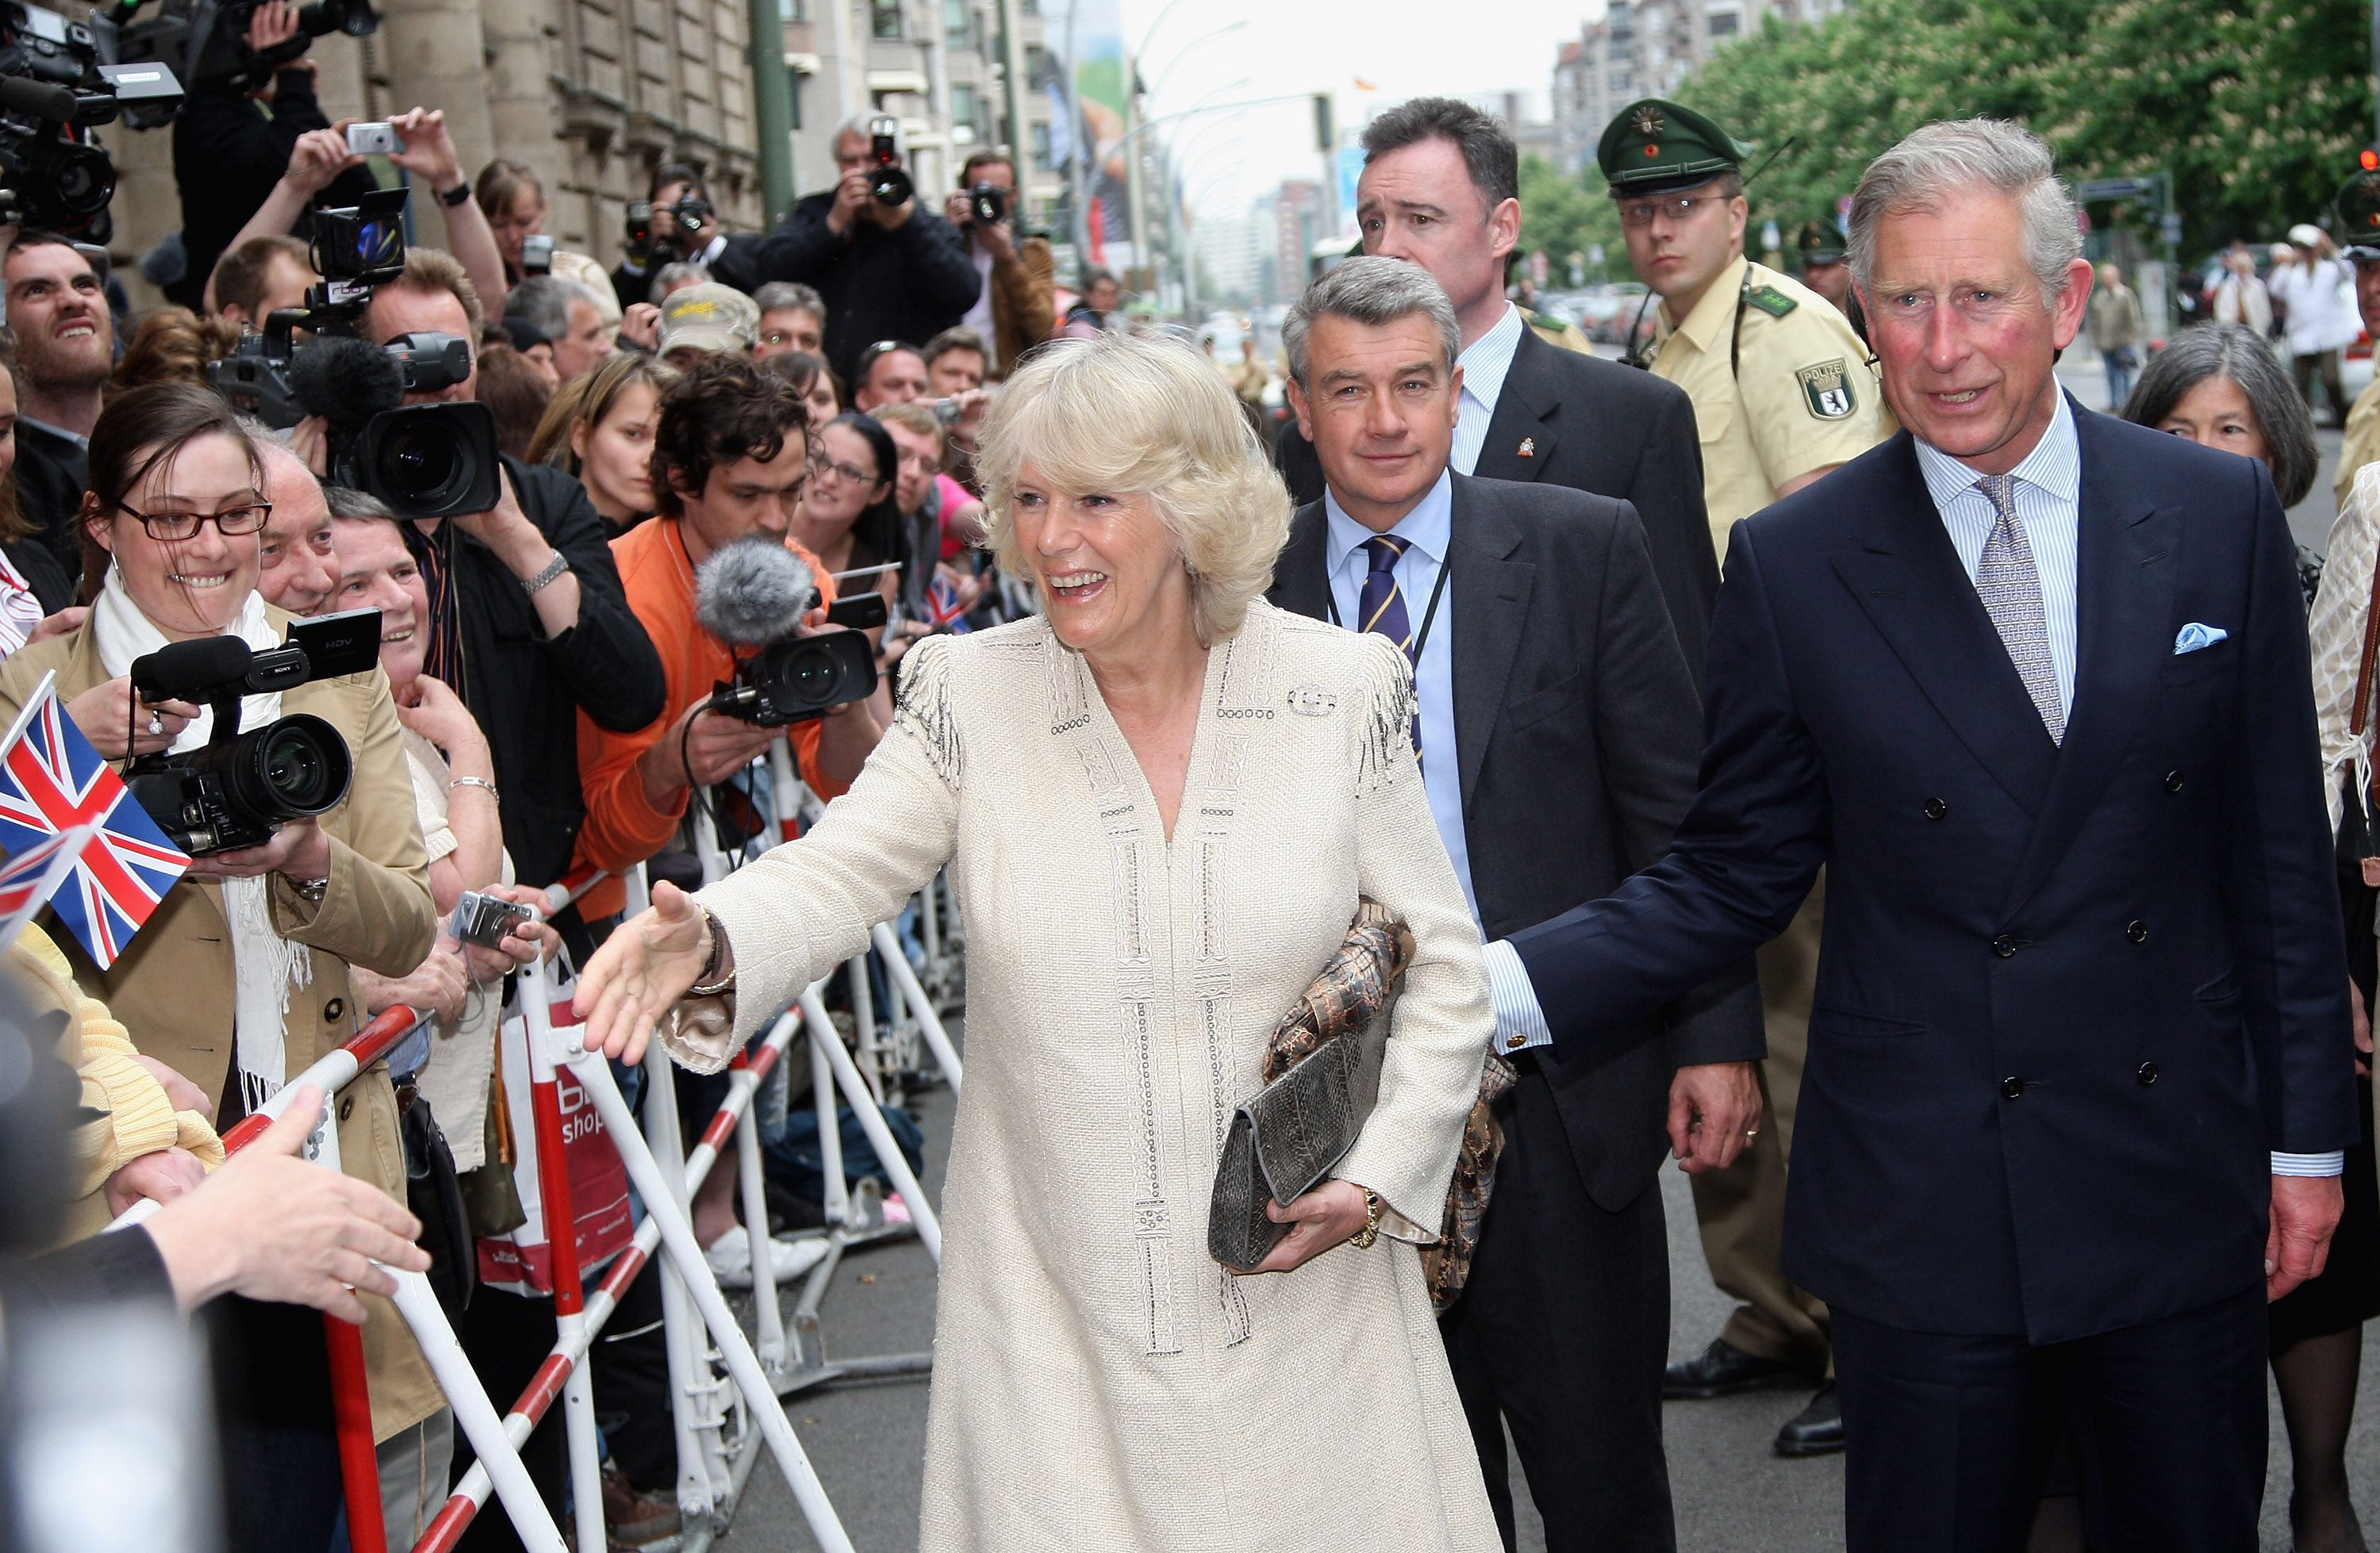 Prince Charles and Camilla greet the crowds in Berlin during their visit in 2009.